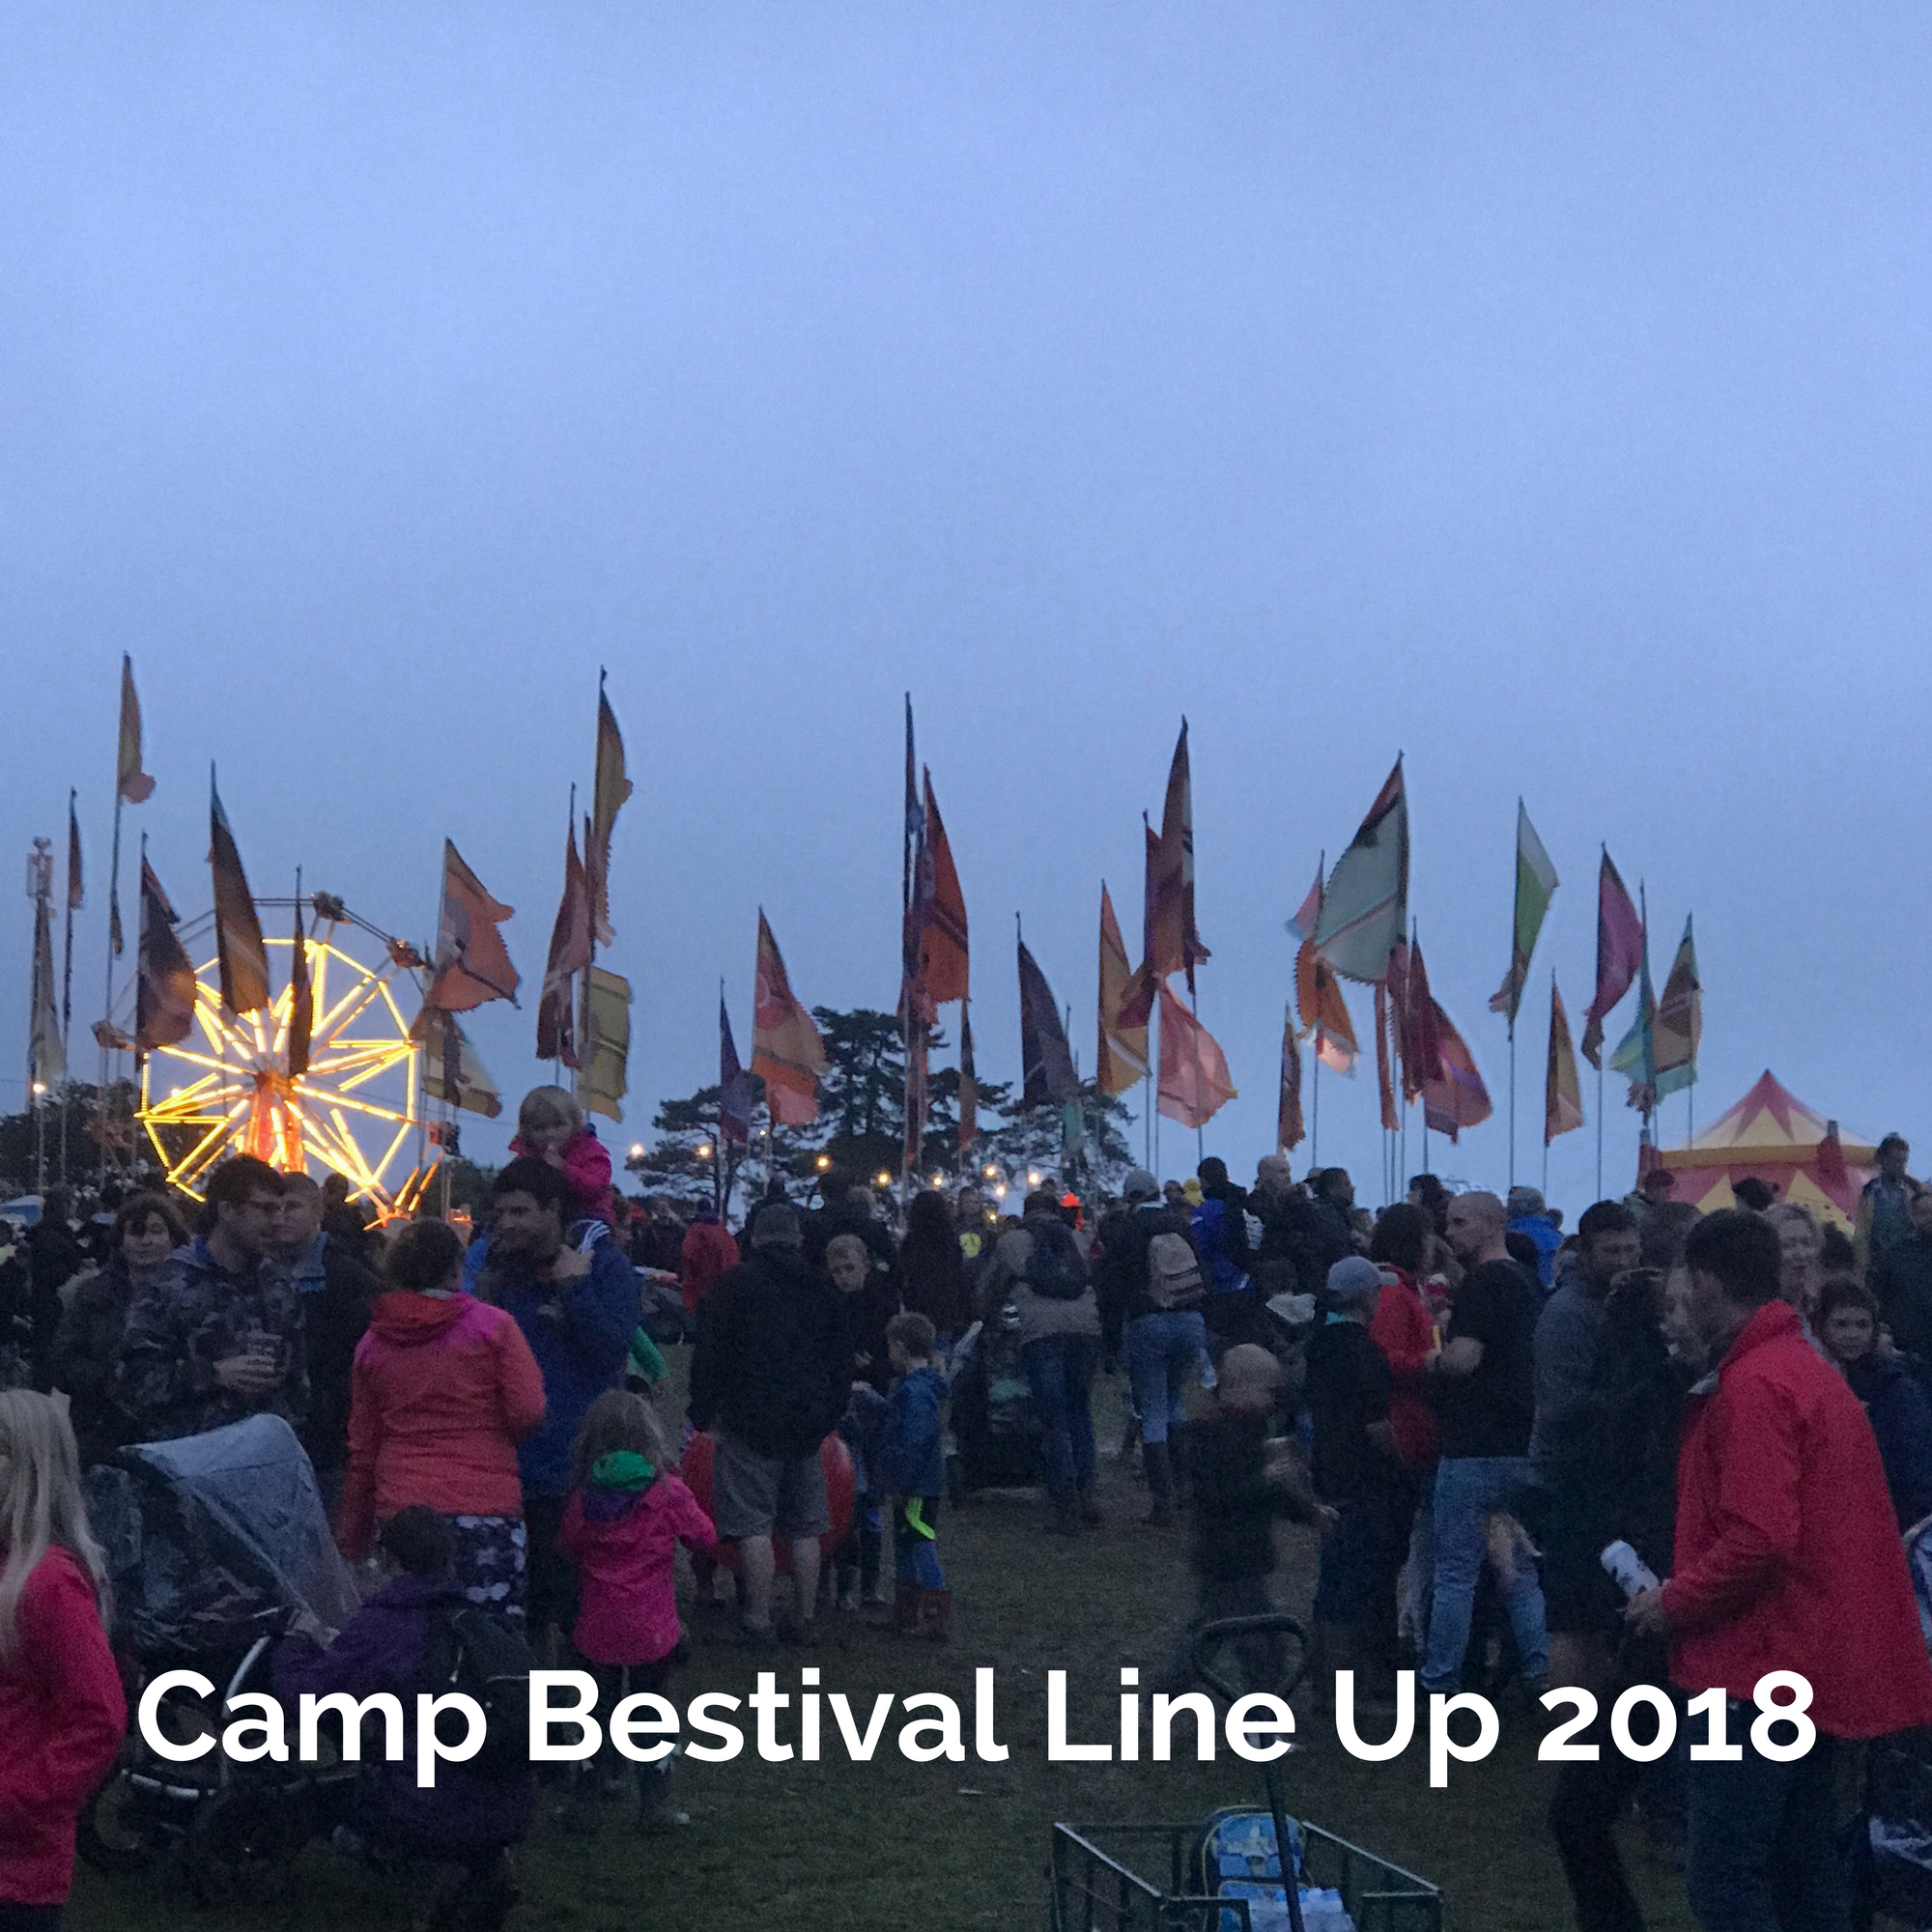 Camp Bestival Line Up 2018